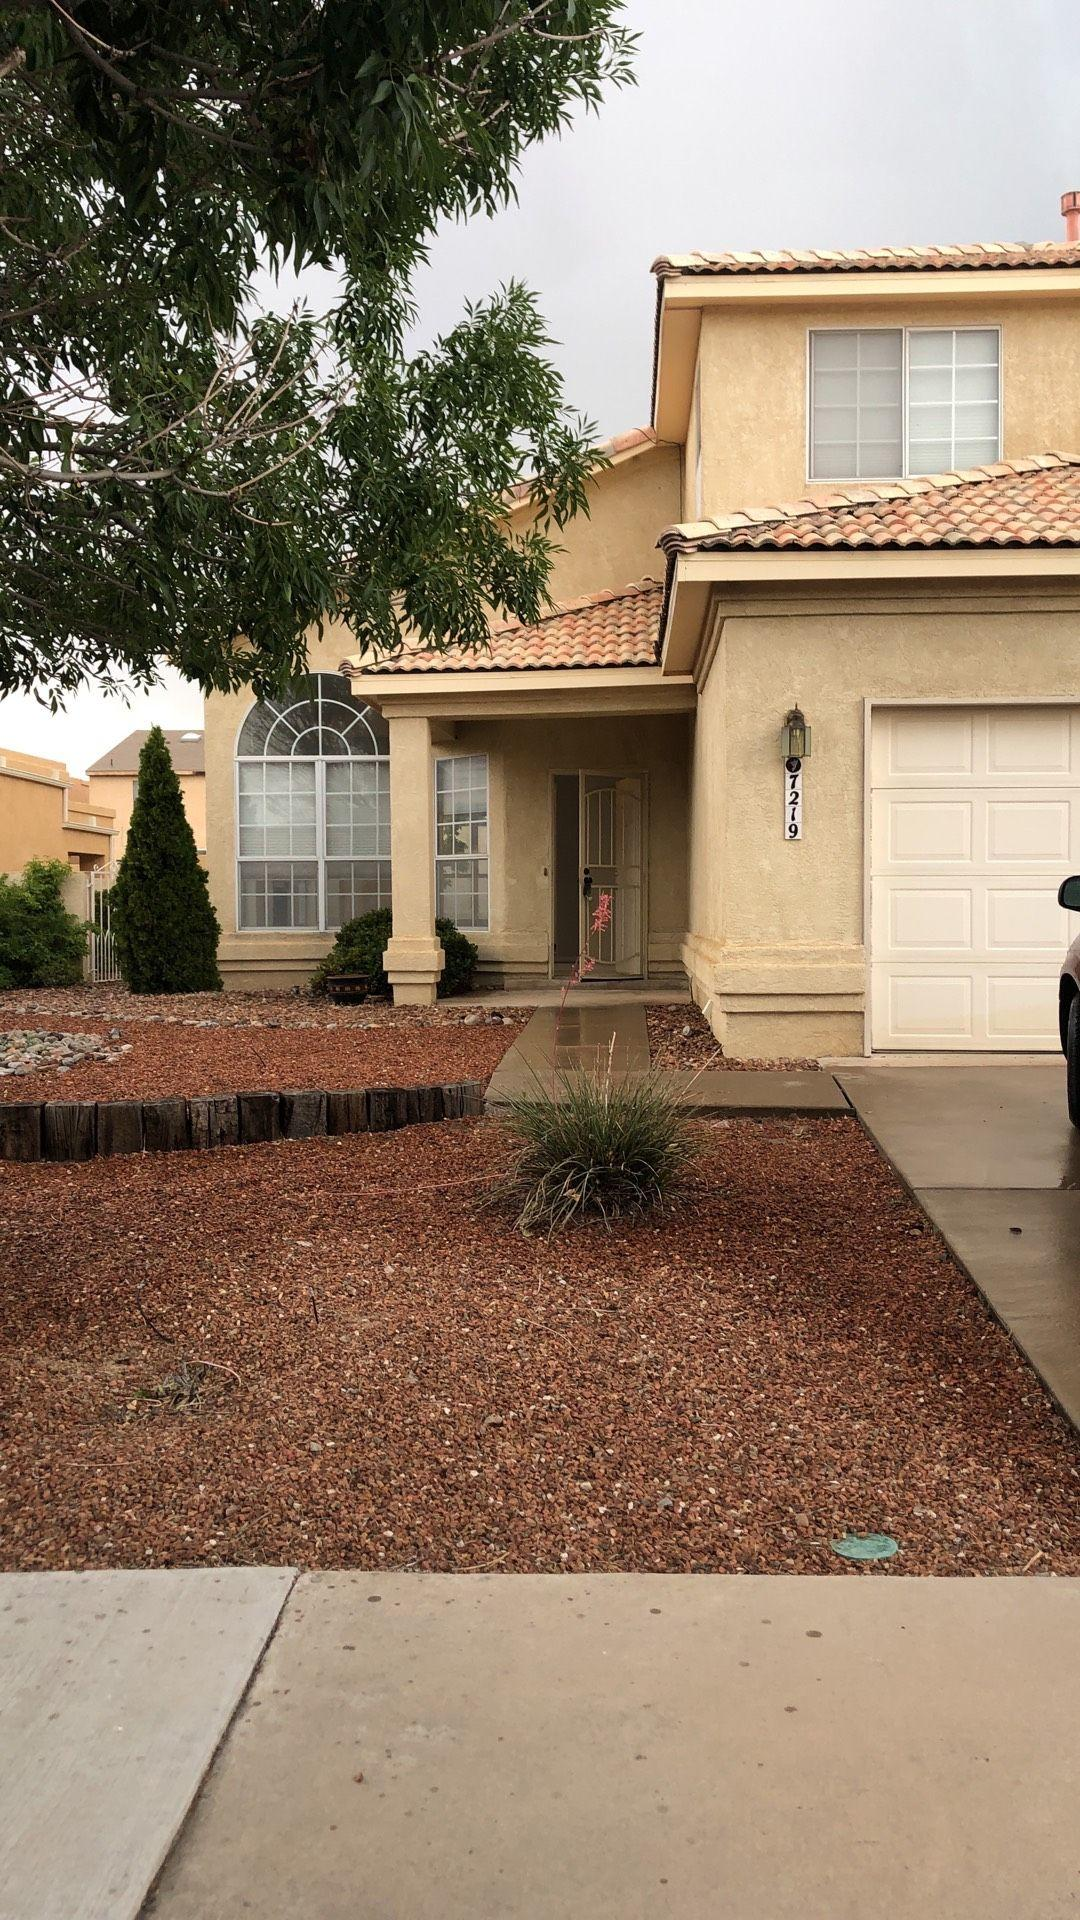 Scottsdale style home.  A Master Bedroom with a balcony!  A spacious home with beautiful lighting.  Great neighborhood, close to shopping and restaurants.